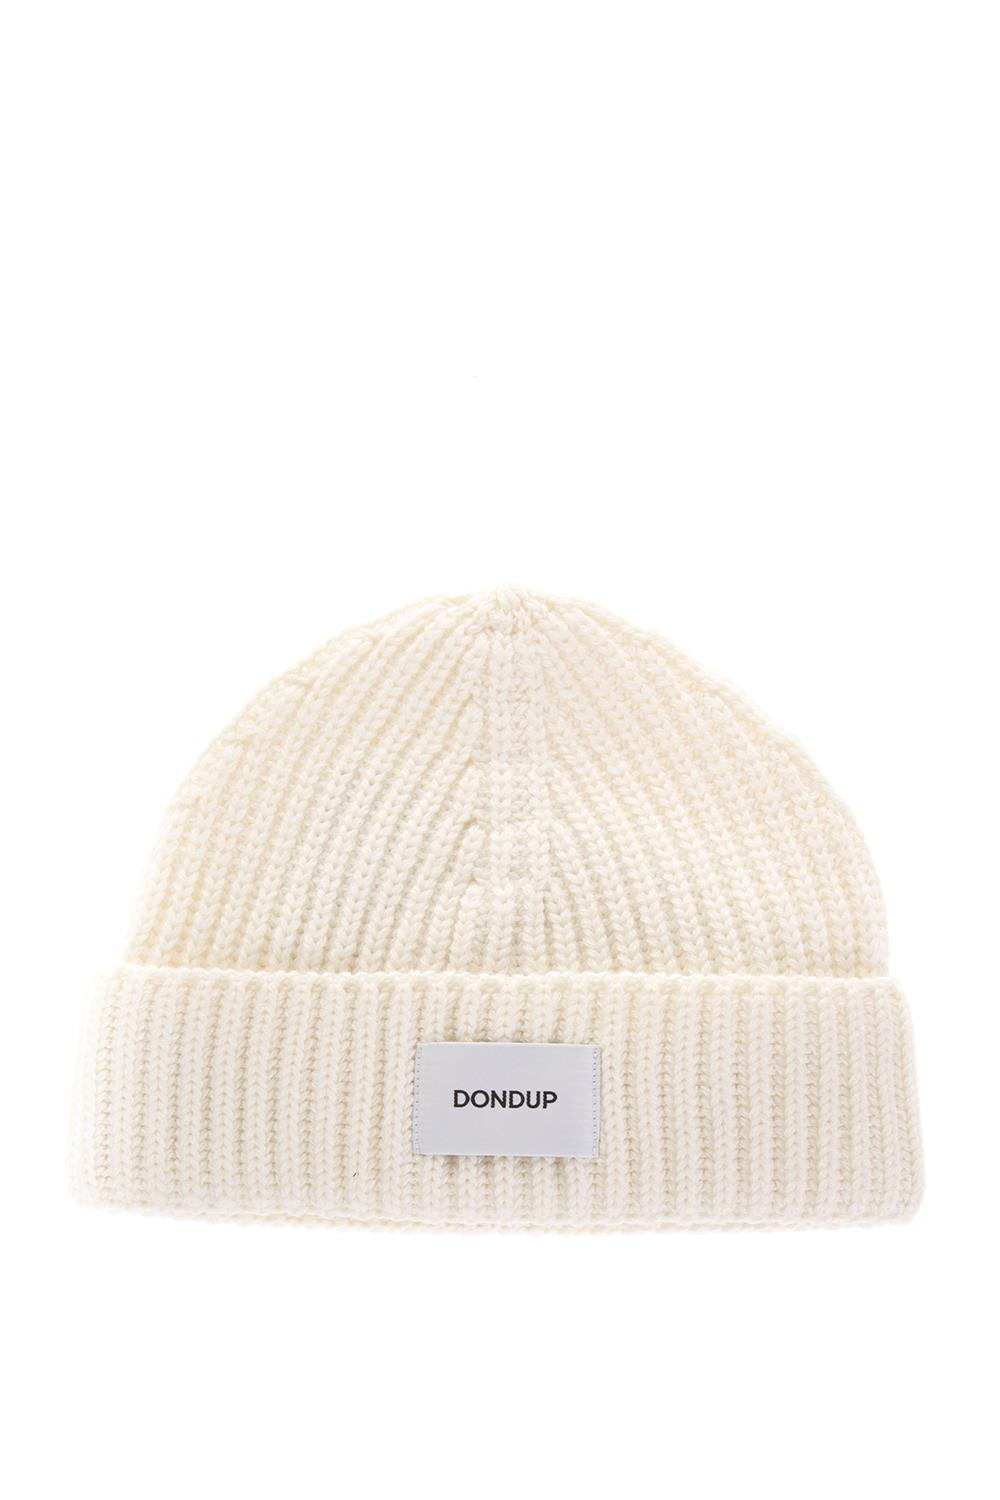 77f364cd196 WHITE RIBBED WOOL HAT FW 2018 - DONDUP - Boutique Galiano